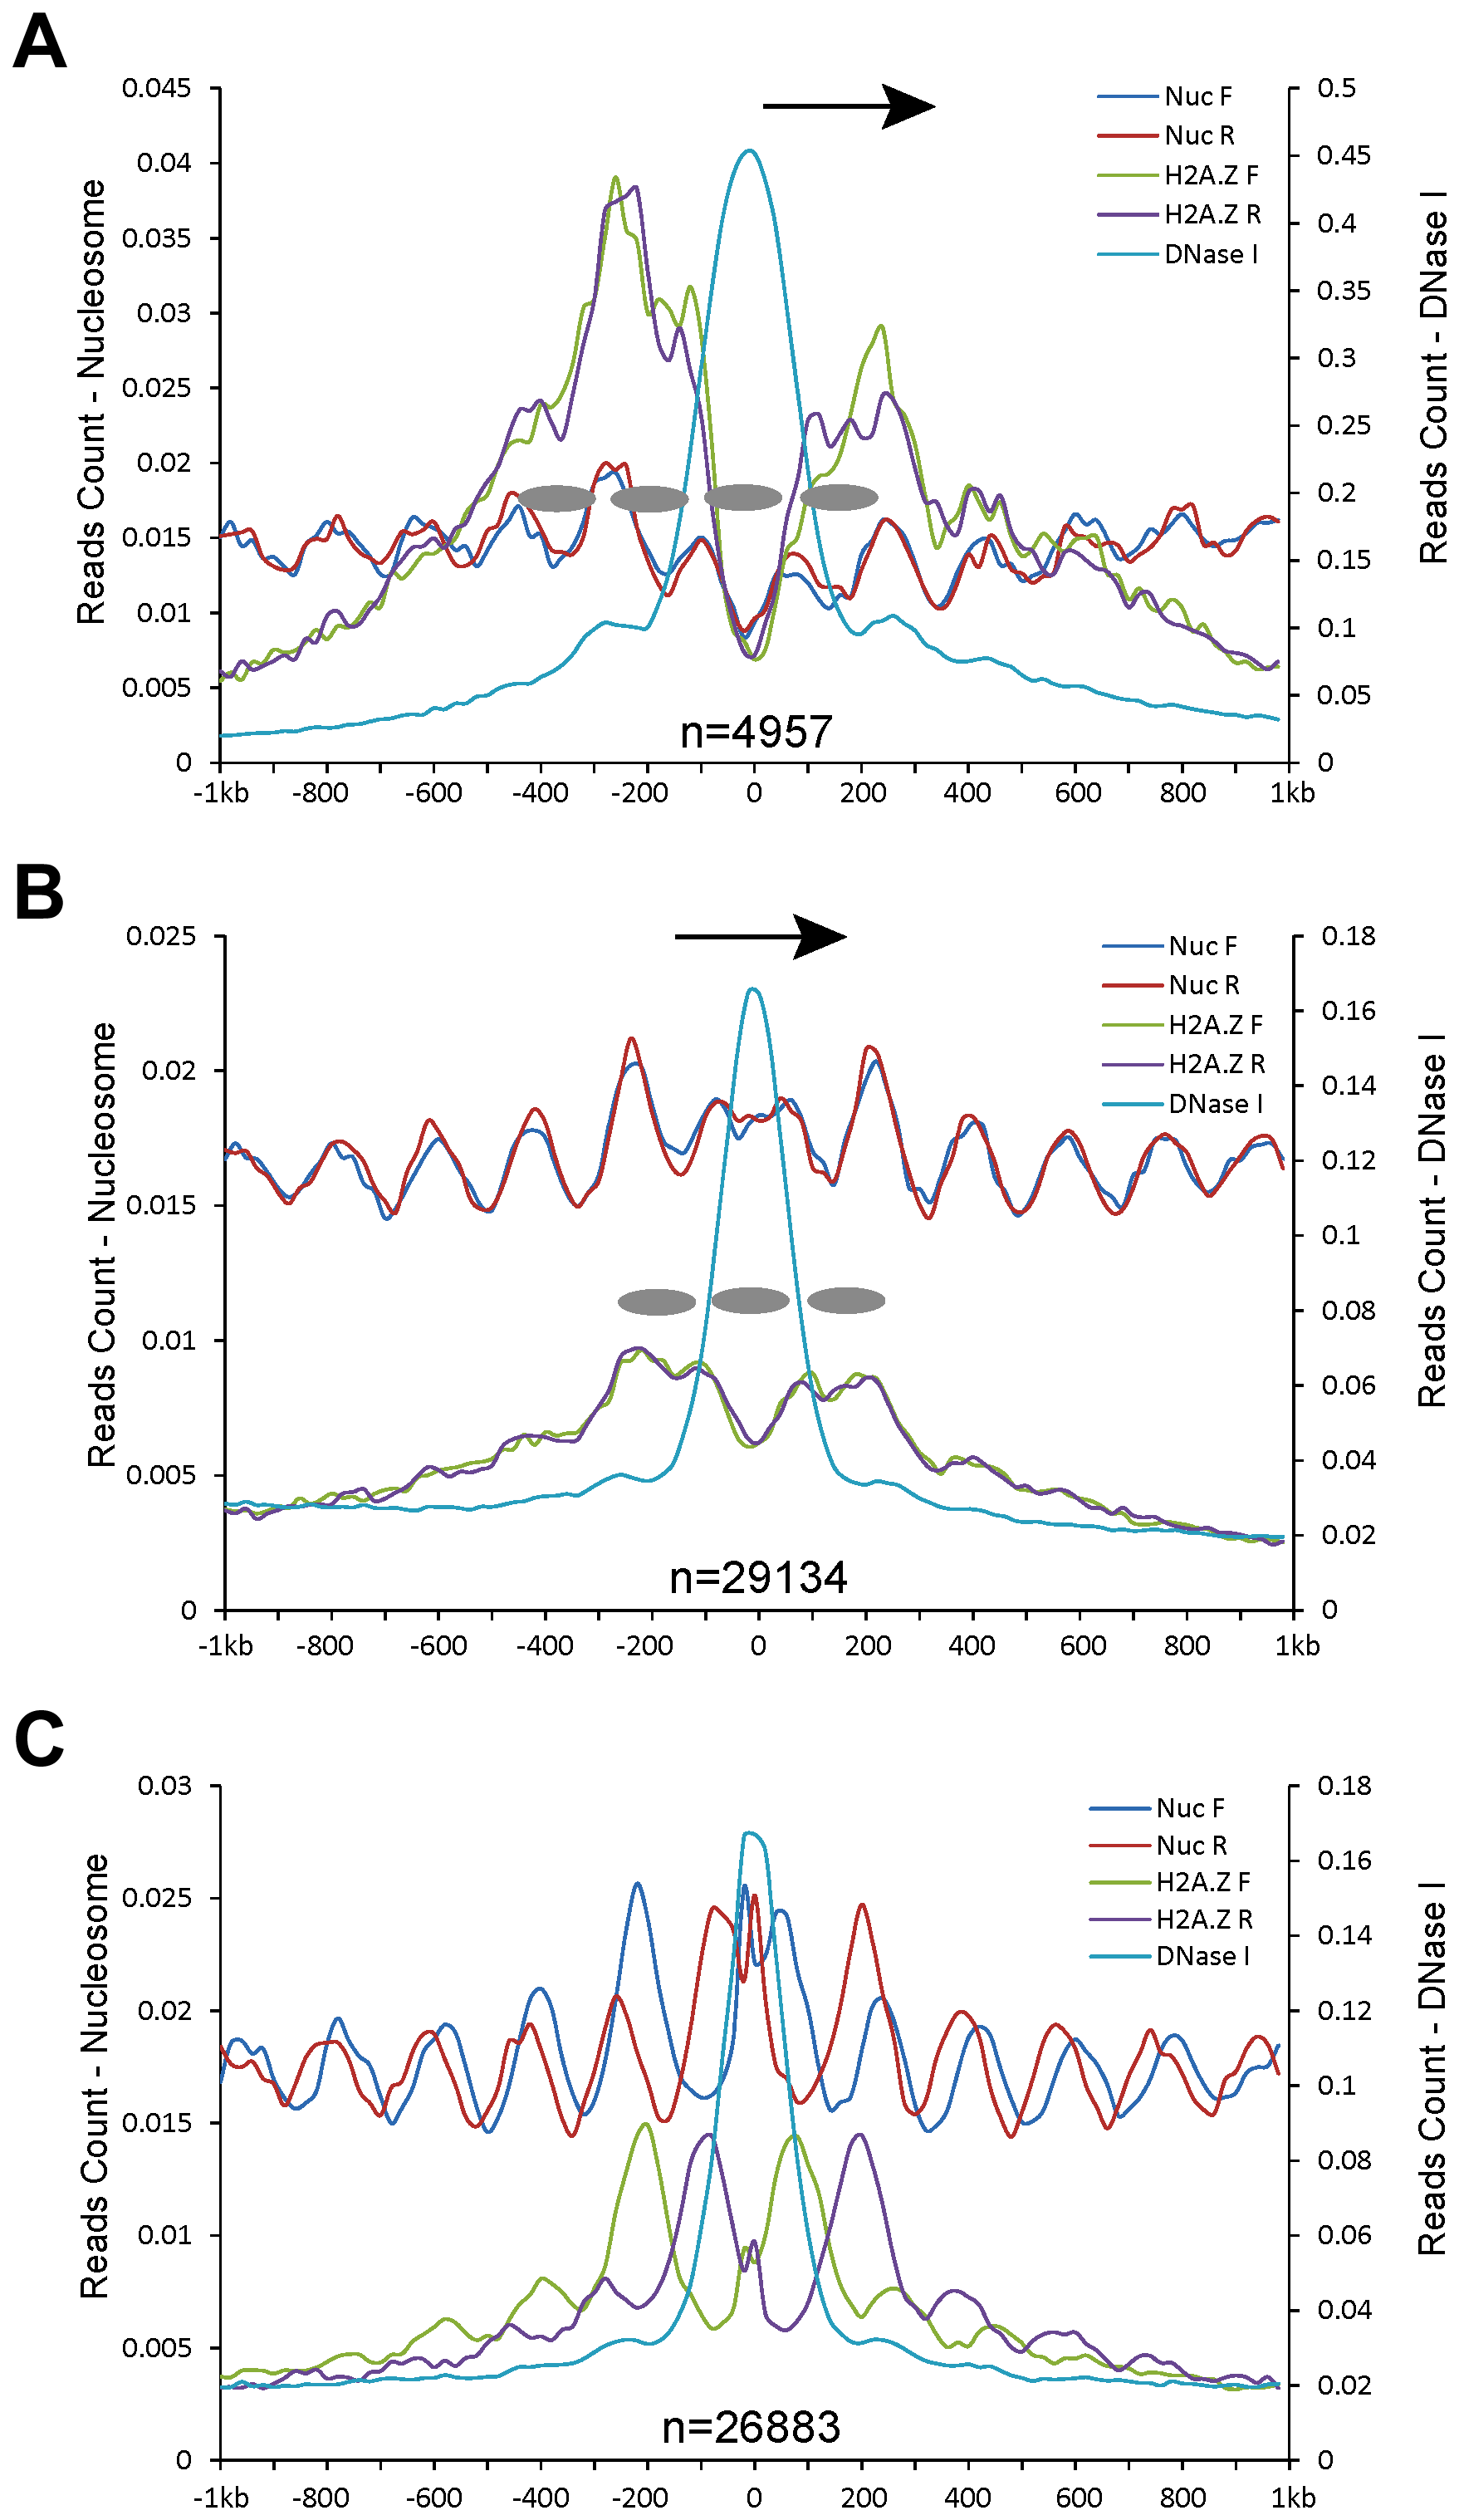 Patterns of nucleosome positioning around DHSs in the human genome.